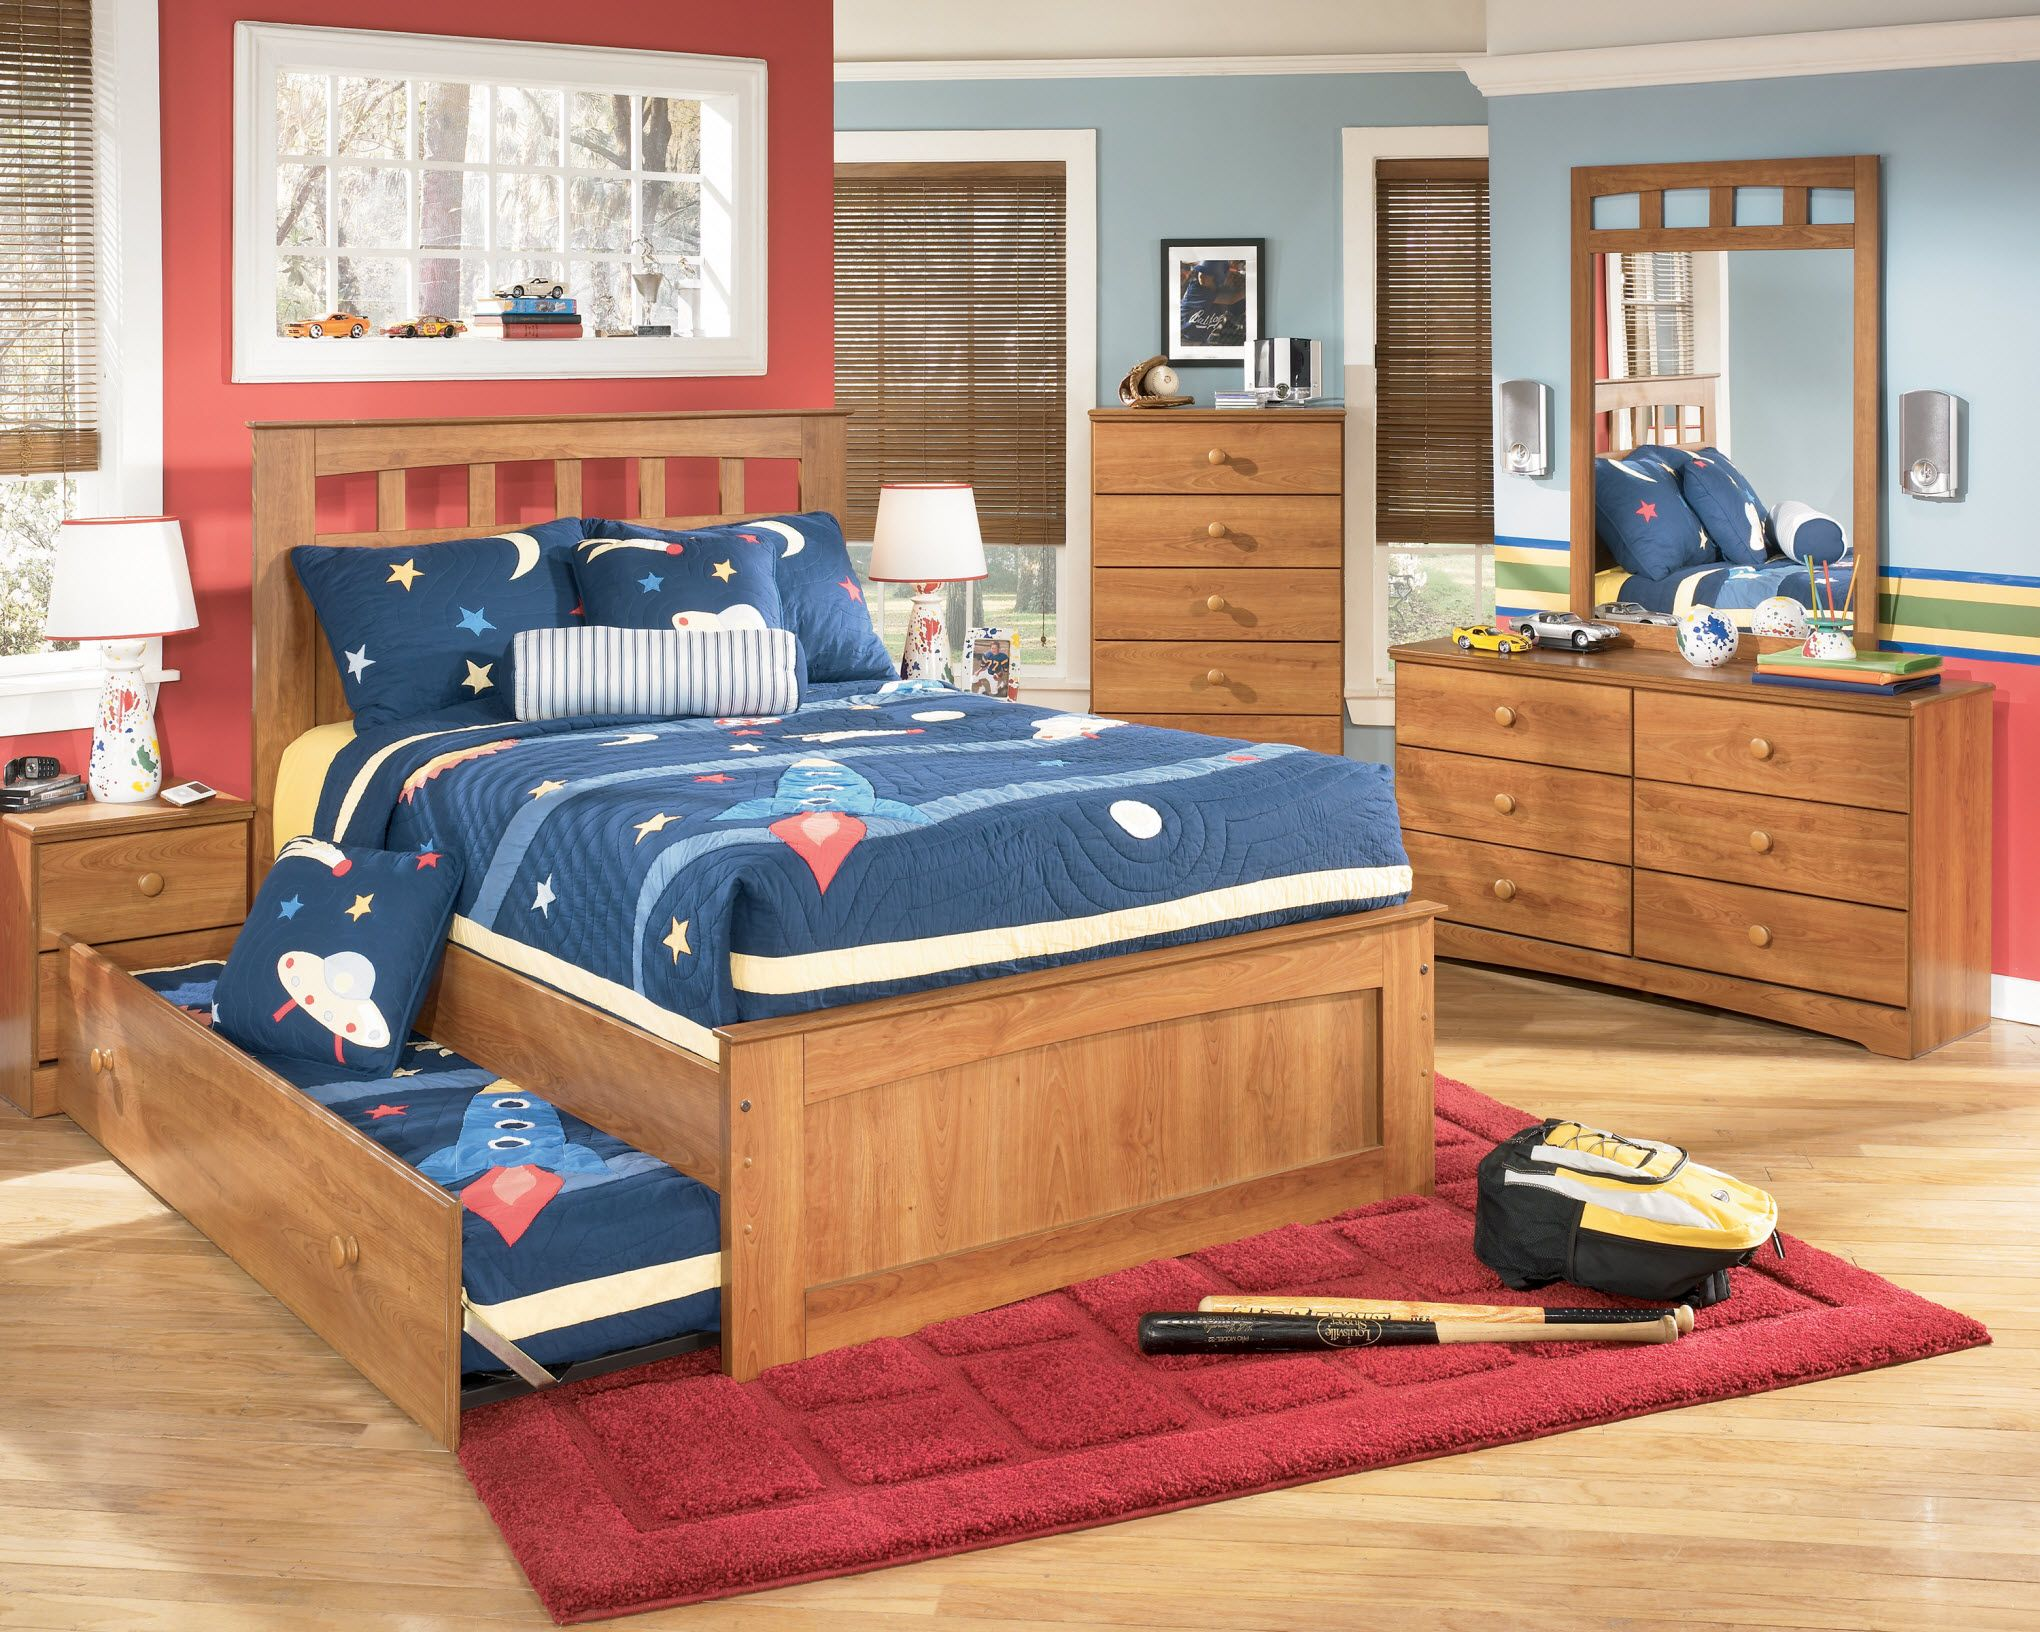 boys bedroom sets. 16 Cool Boys Bedroom Sets Ideas Ome Speak  With Regard To Really Encourage Decor Red Fluffy Carpet Tiles Corner Storage Cabinet